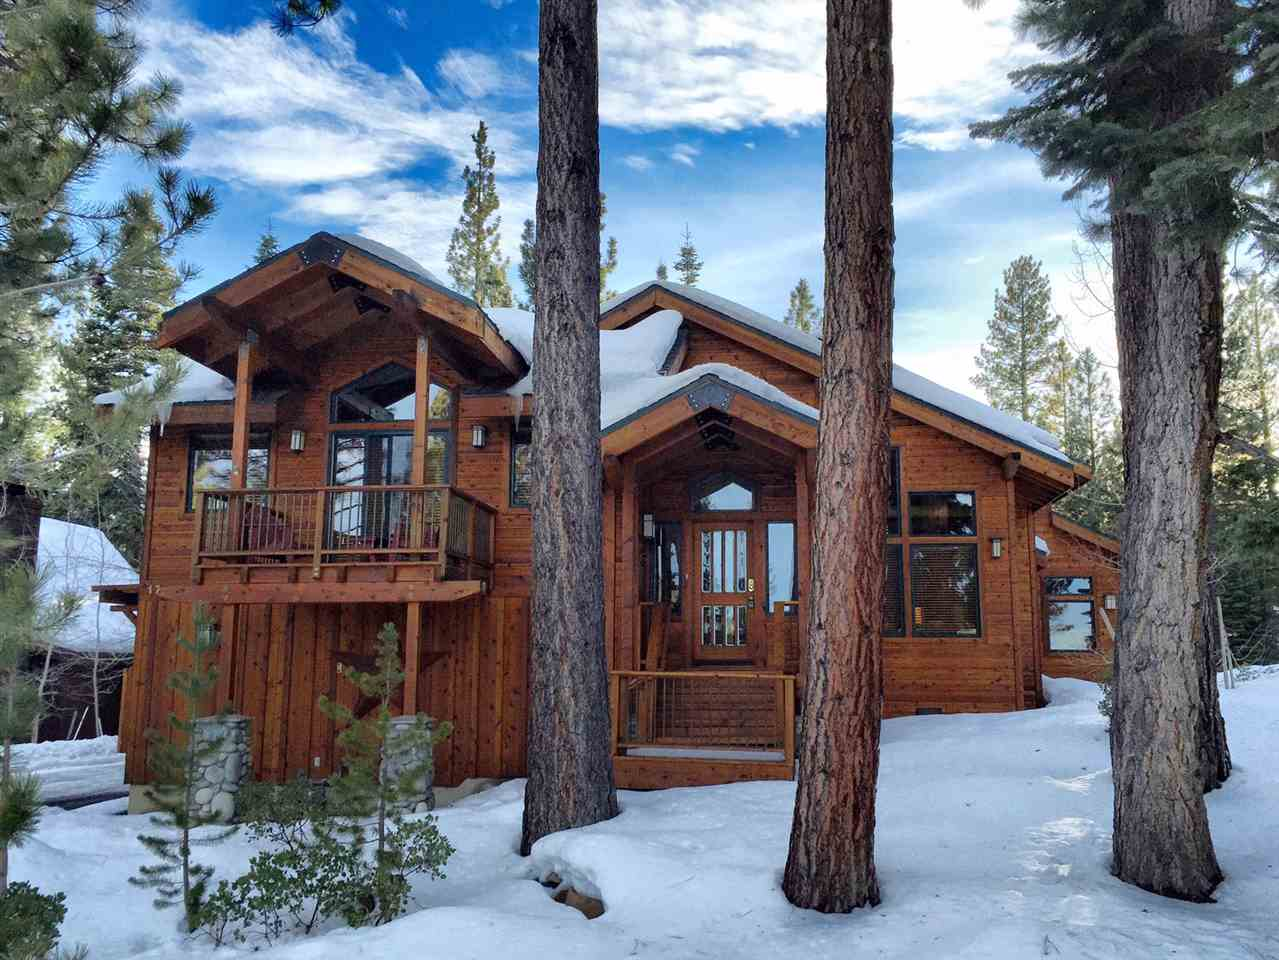 ca hotel cottages court mls real listing skyline sold truckee estate cottage